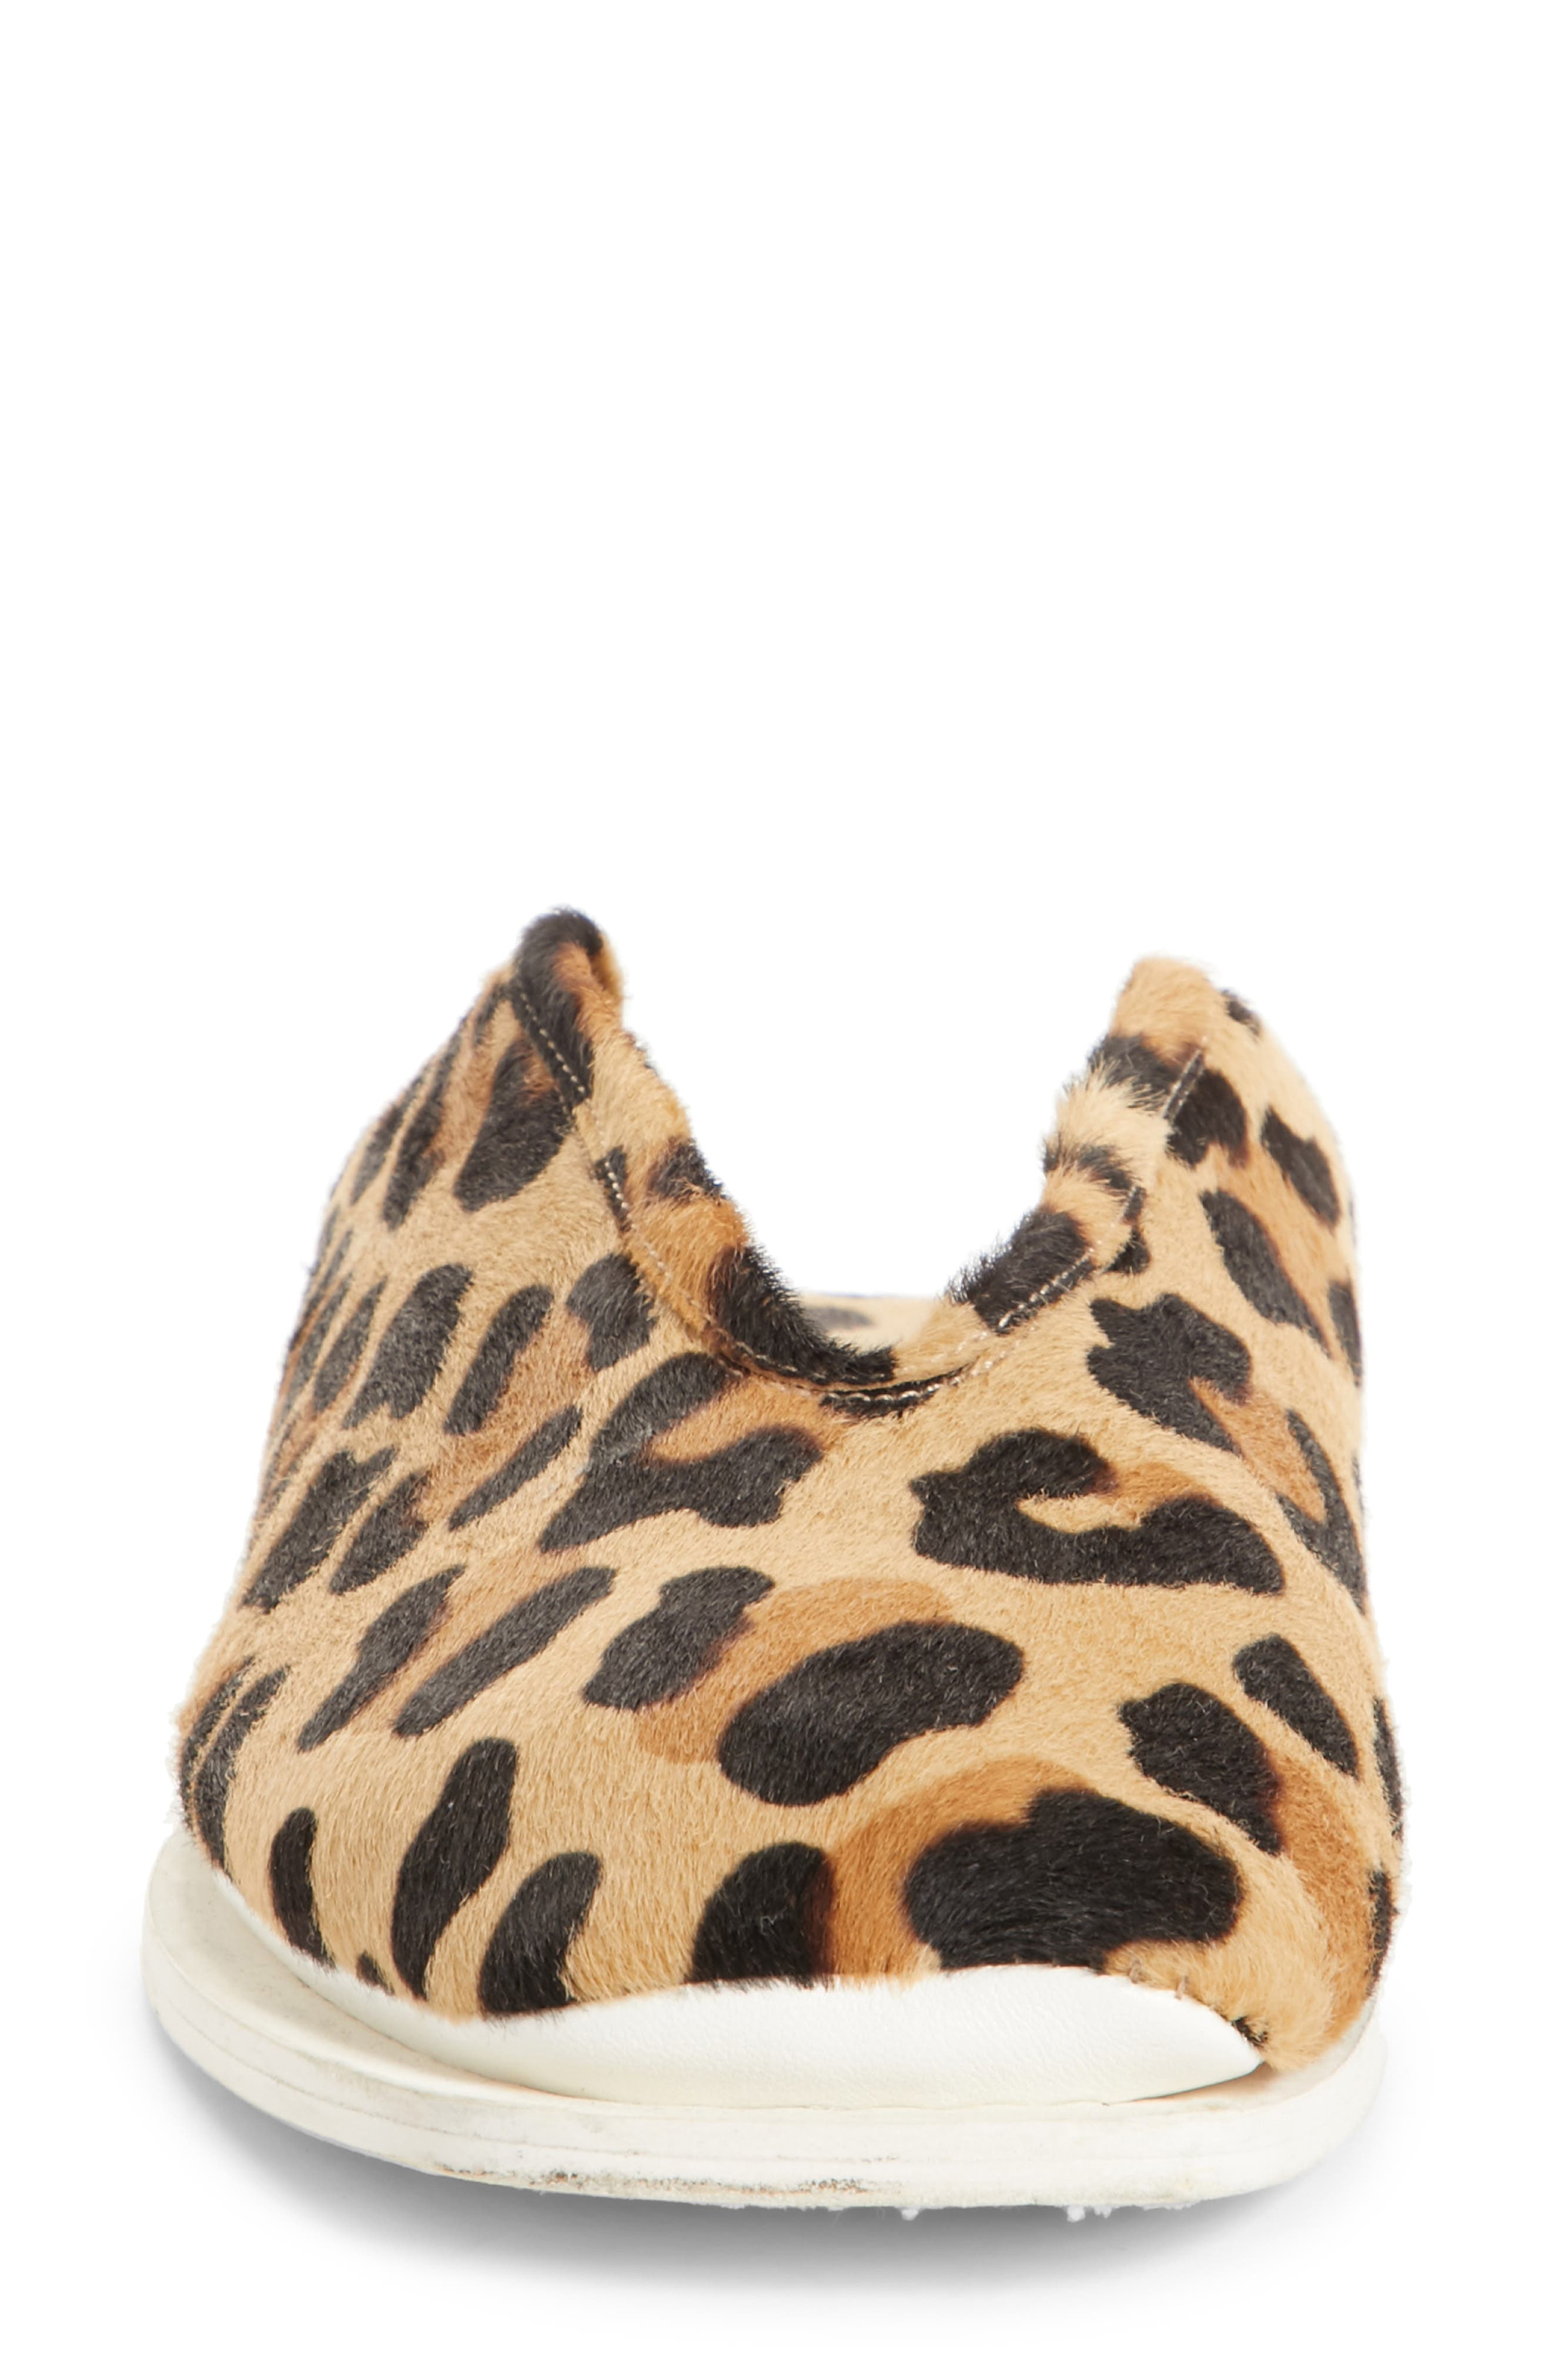 PSWL Genuine Calf Hair Convertible Loafer,                             Alternate thumbnail 4, color,                             Leopard Print